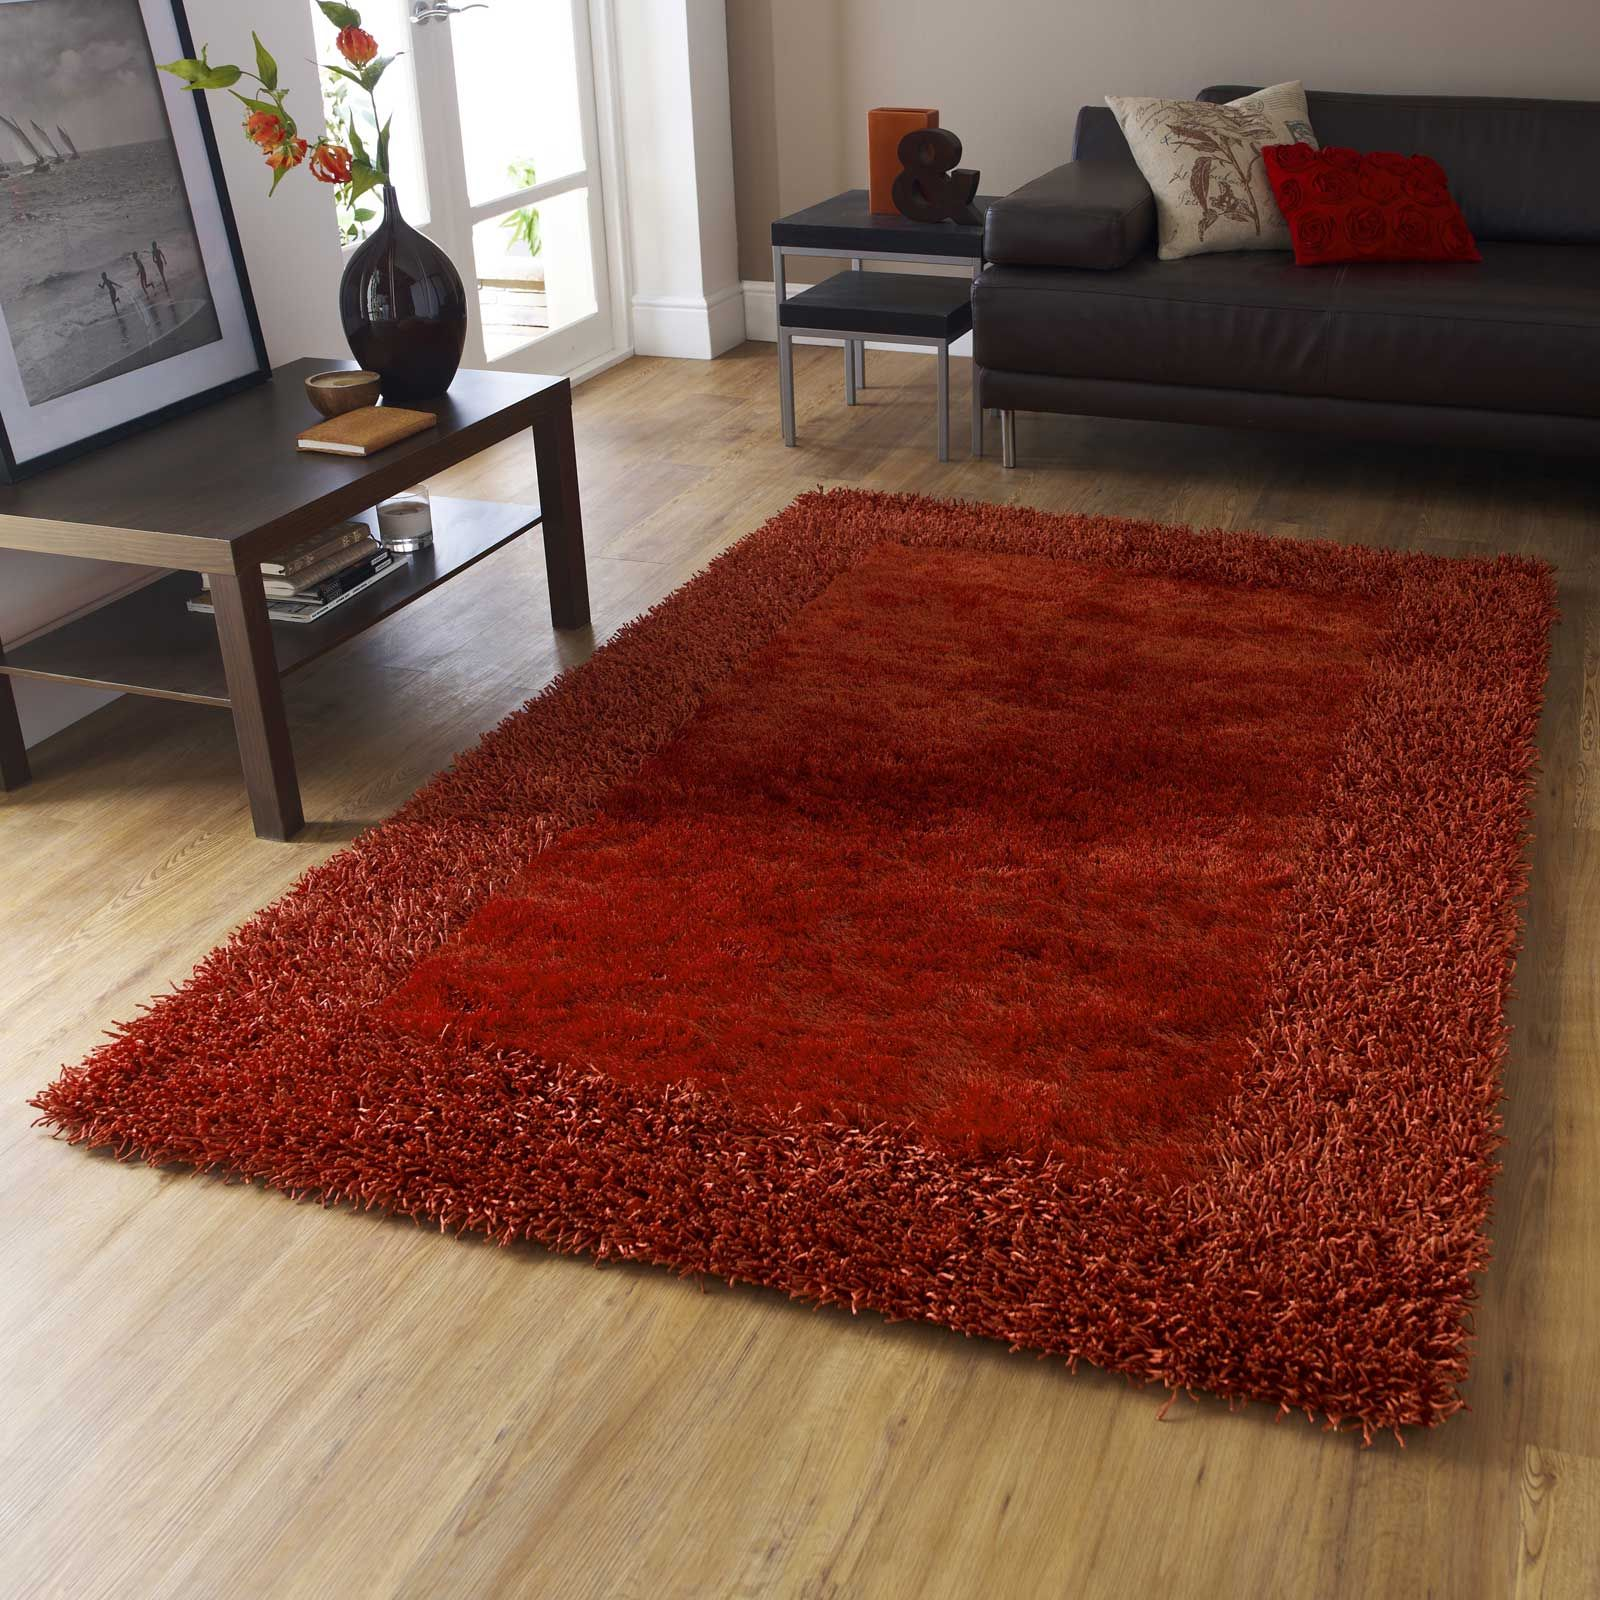 Sable 2 Rugs In Burnt Orange Is Handmade China With A Soft Silky Polyester Pile Contrasting Viscose Border The High Density Mad